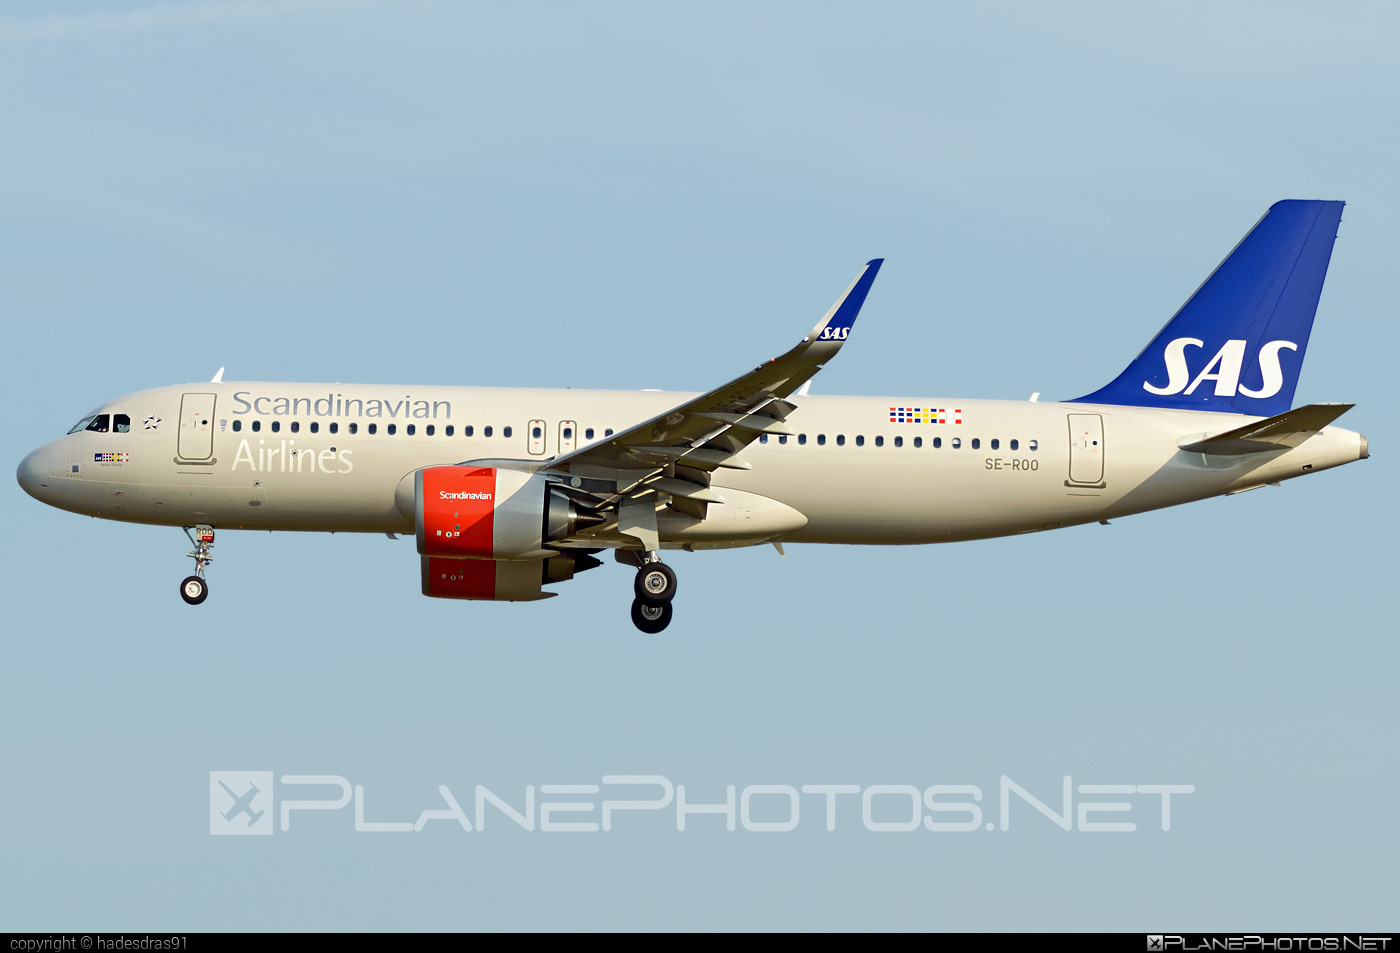 Airbus A320-251N - SE-ROO operated by Scandinavian Airlines (SAS) #a320 #a320family #a320neo #airbus #airbus320 #sas #sasairlines #scandinavianairlines